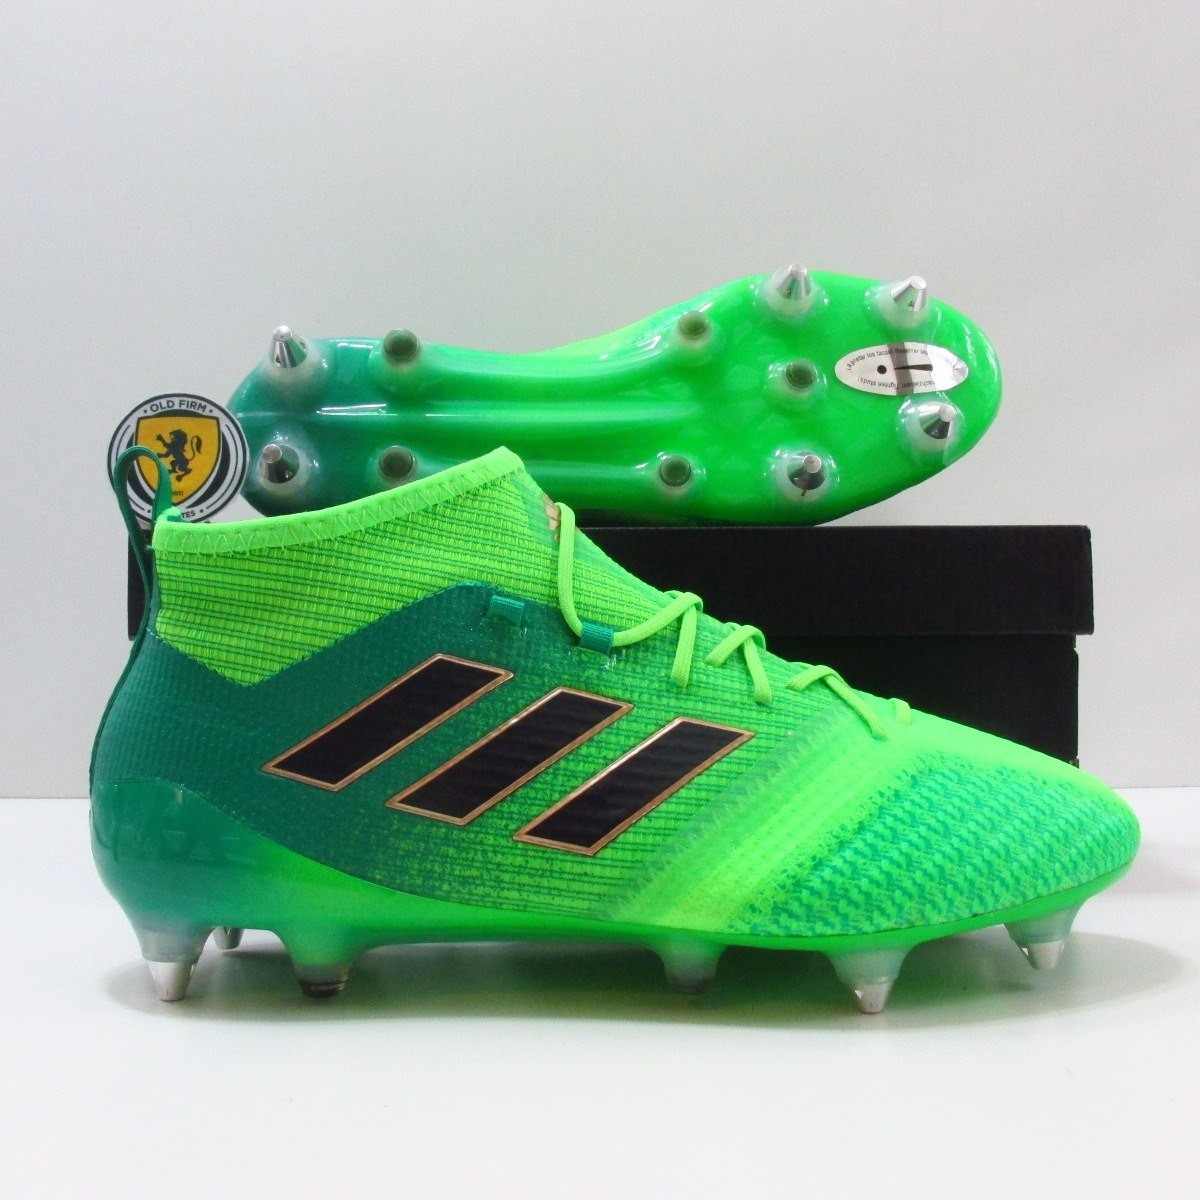 47b6ad9ca1 Carregando zoom  best authentic chuteira campo adidas ace 17.1 sg trava  mista original. Carregando zoom.